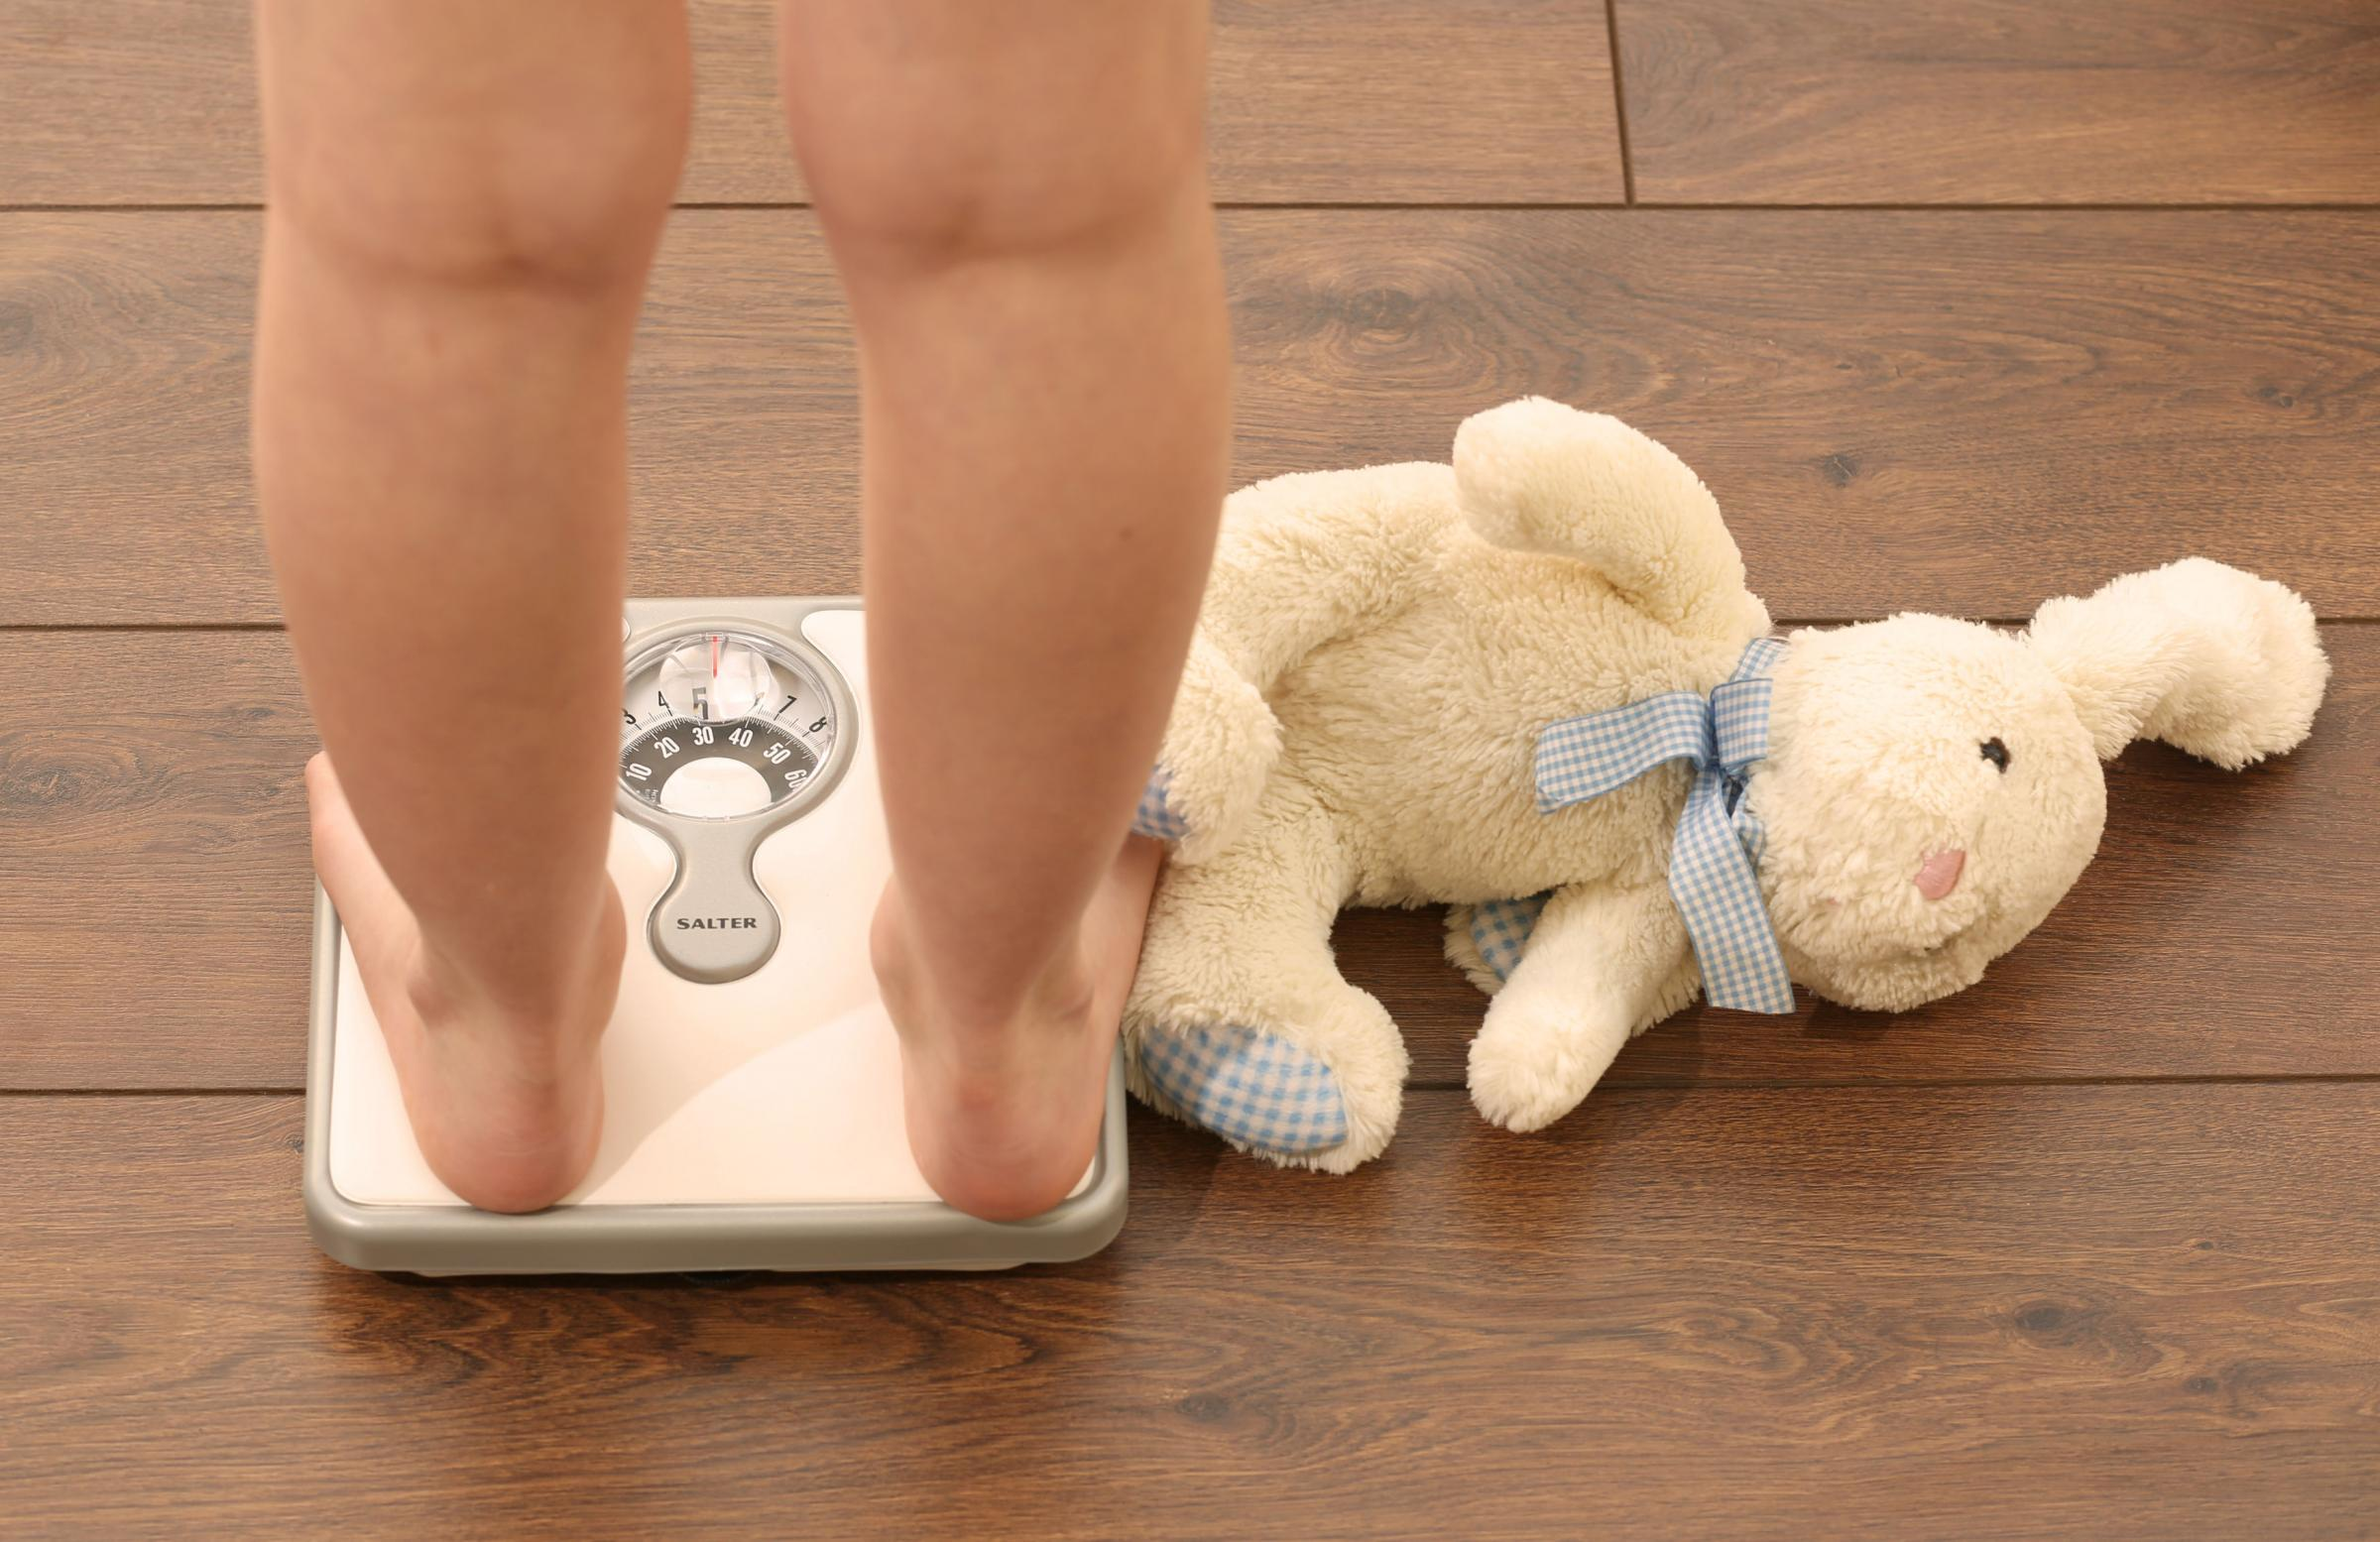 Current methods of measuring weight are 'underestimating the scale of the problem'